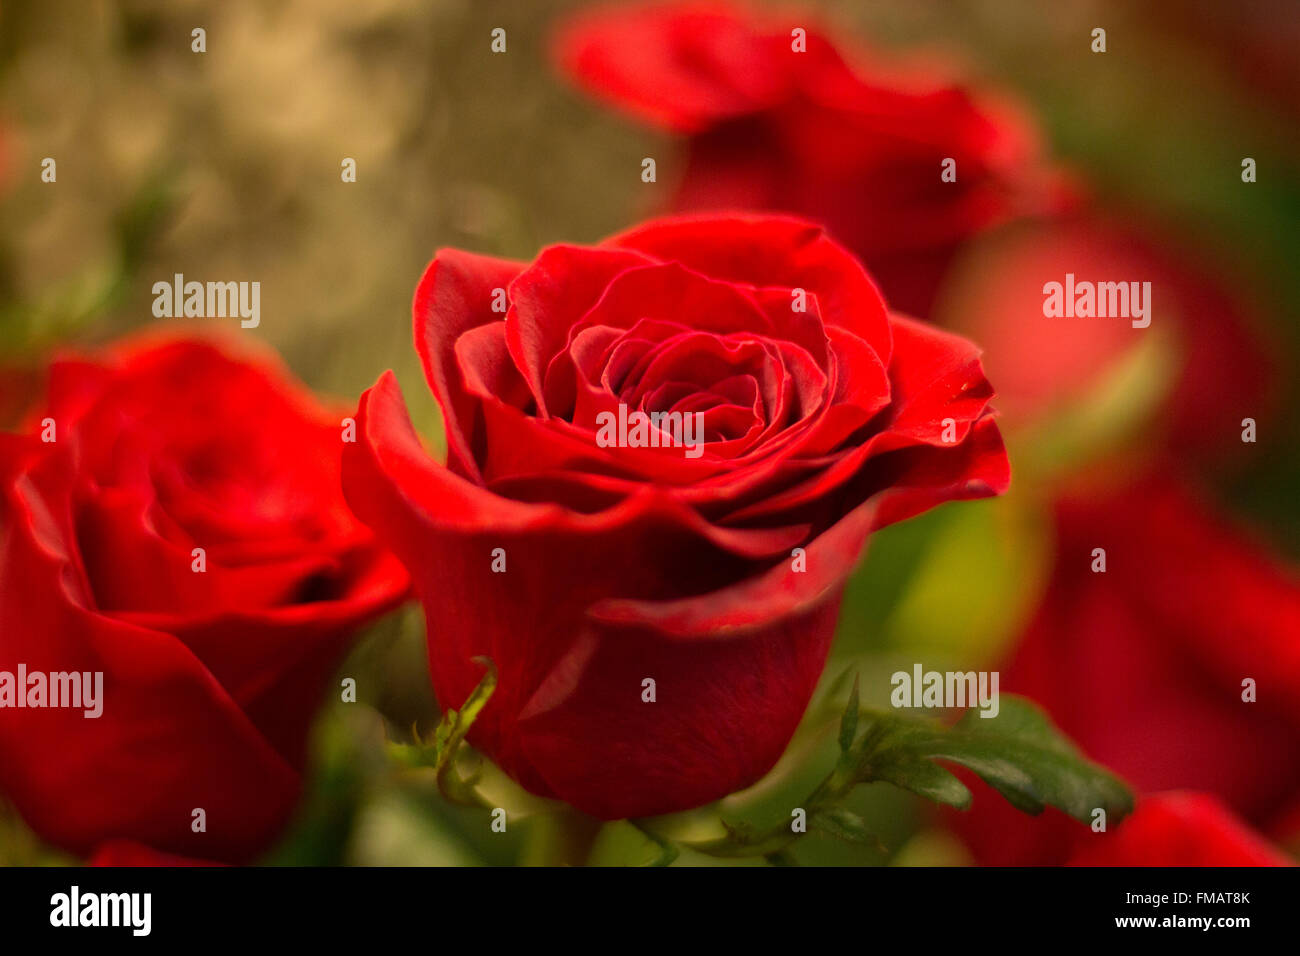 Bunch of red roses bouquet of flowers prepared for saint valentines bunch of red roses bouquet of flowers prepared for saint valentines day in florists store flower shop close up photo izmirmasajfo Images